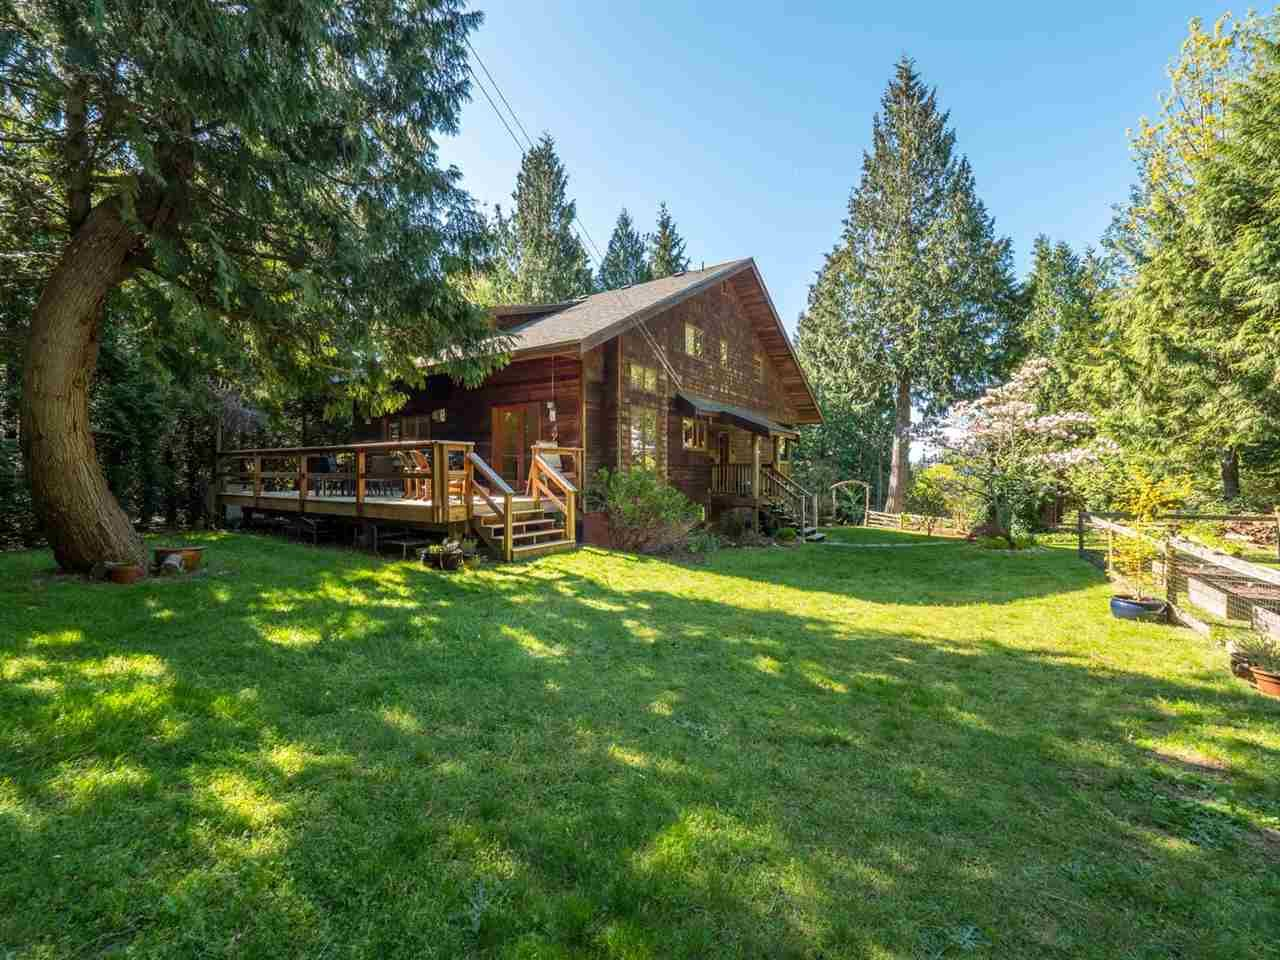 Main Photo: 3204 HUCKLEBERRY Road: Roberts Creek House for sale (Sunshine Coast)  : MLS®# R2364064